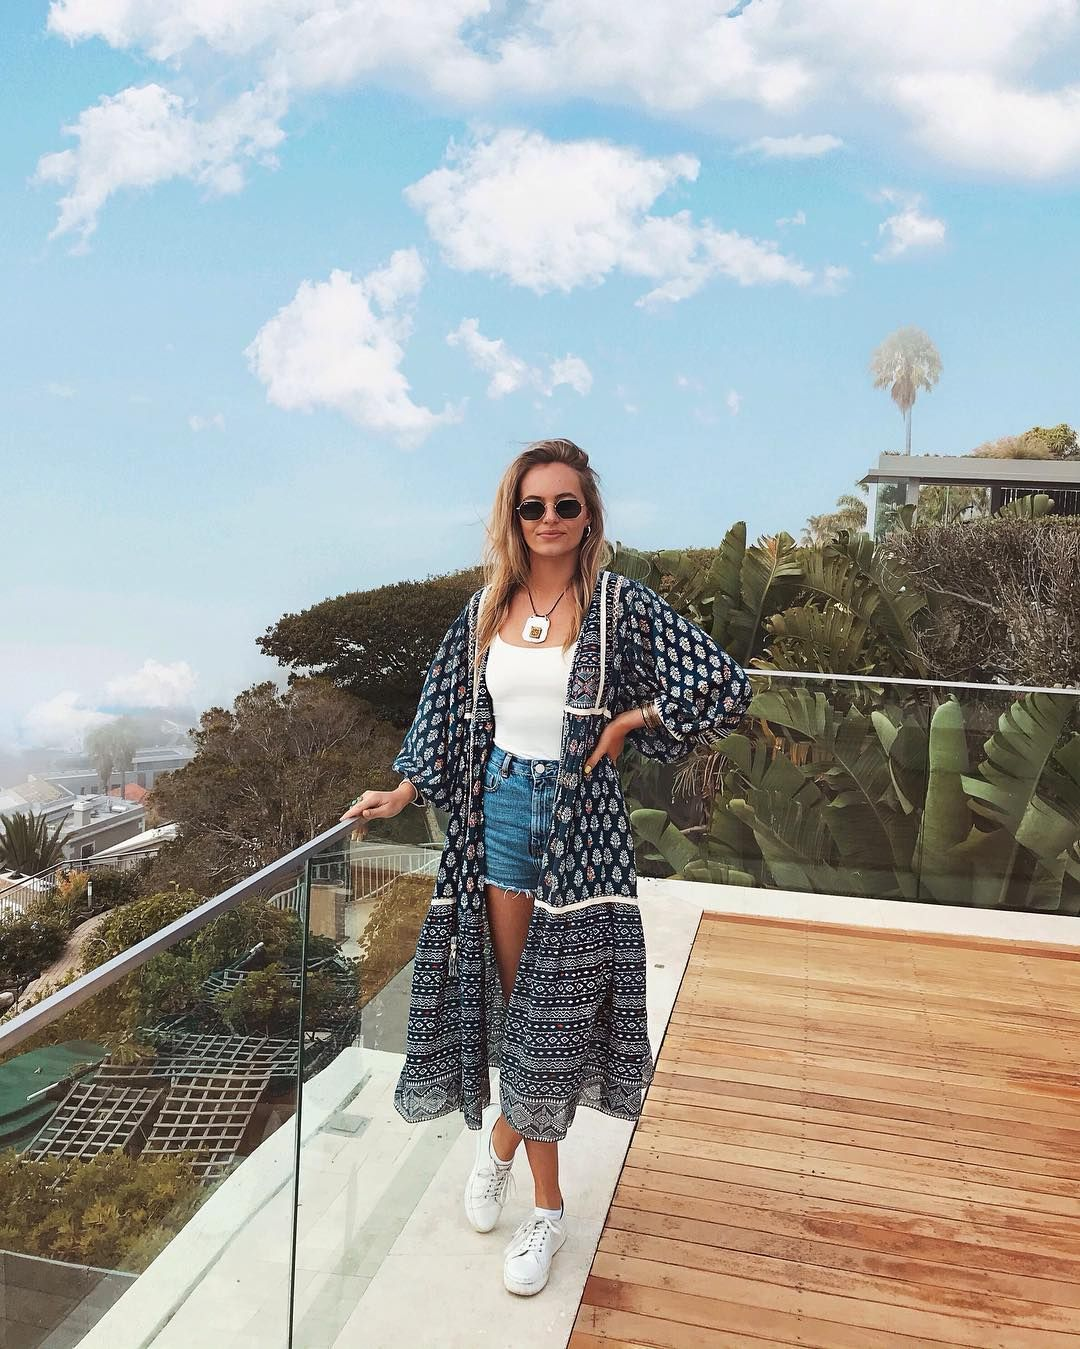 Image may contain: Moondance Villa, Cape Town, Made in Chelsea, South Africa, Eliza Batten, MIC,Sleeve, Plywood, Wood, Apparel, Clothing, Person, Human, Accessories, Accessory, Sunglasses, Balcony